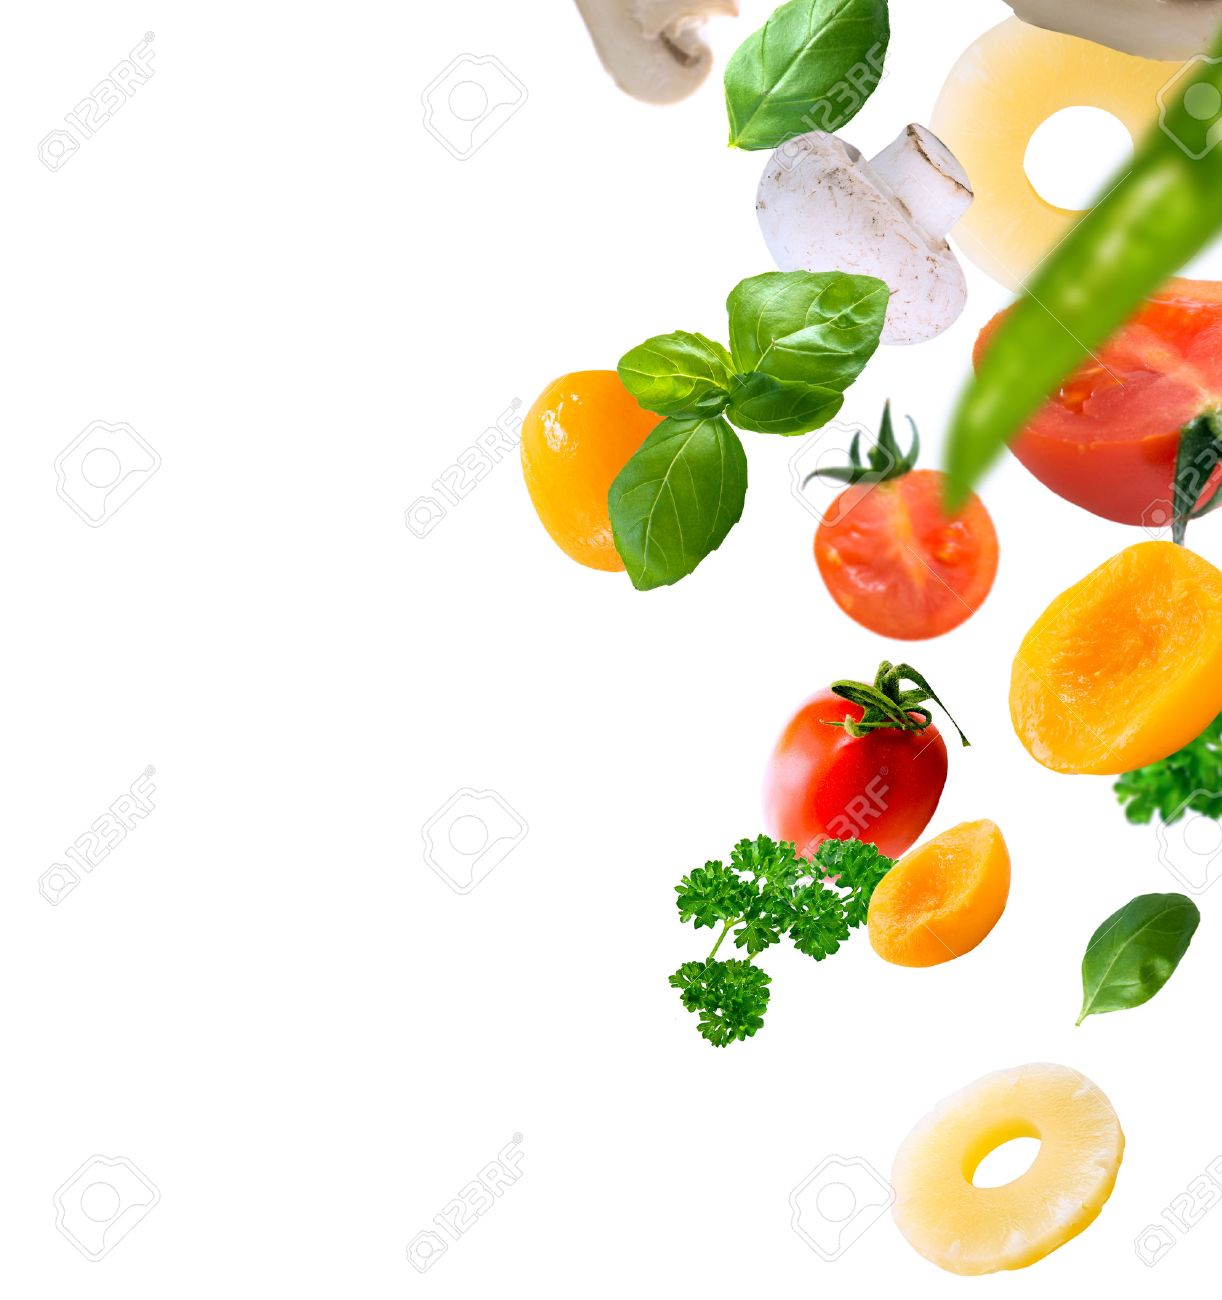 healthy food ingredients on a white background - 40312848